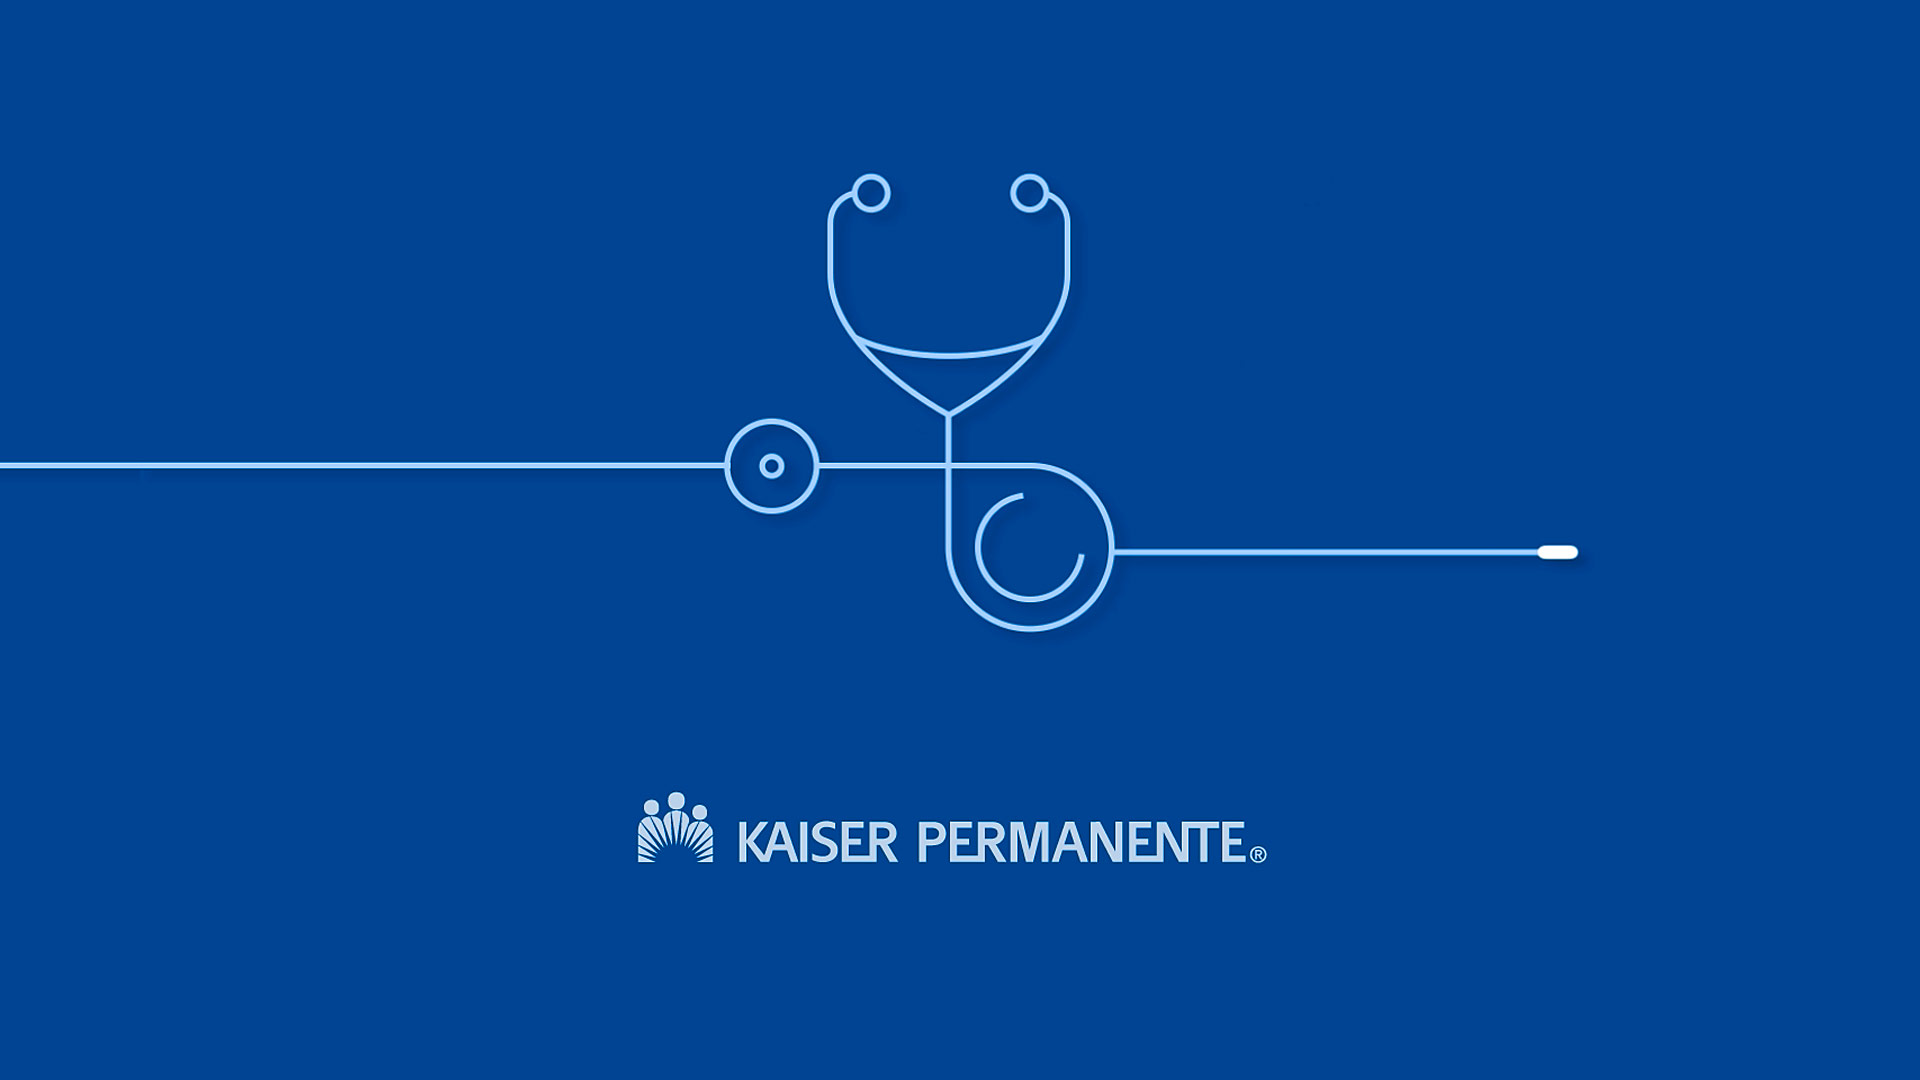 Kaiser Permanente | Clinical Technology Promo